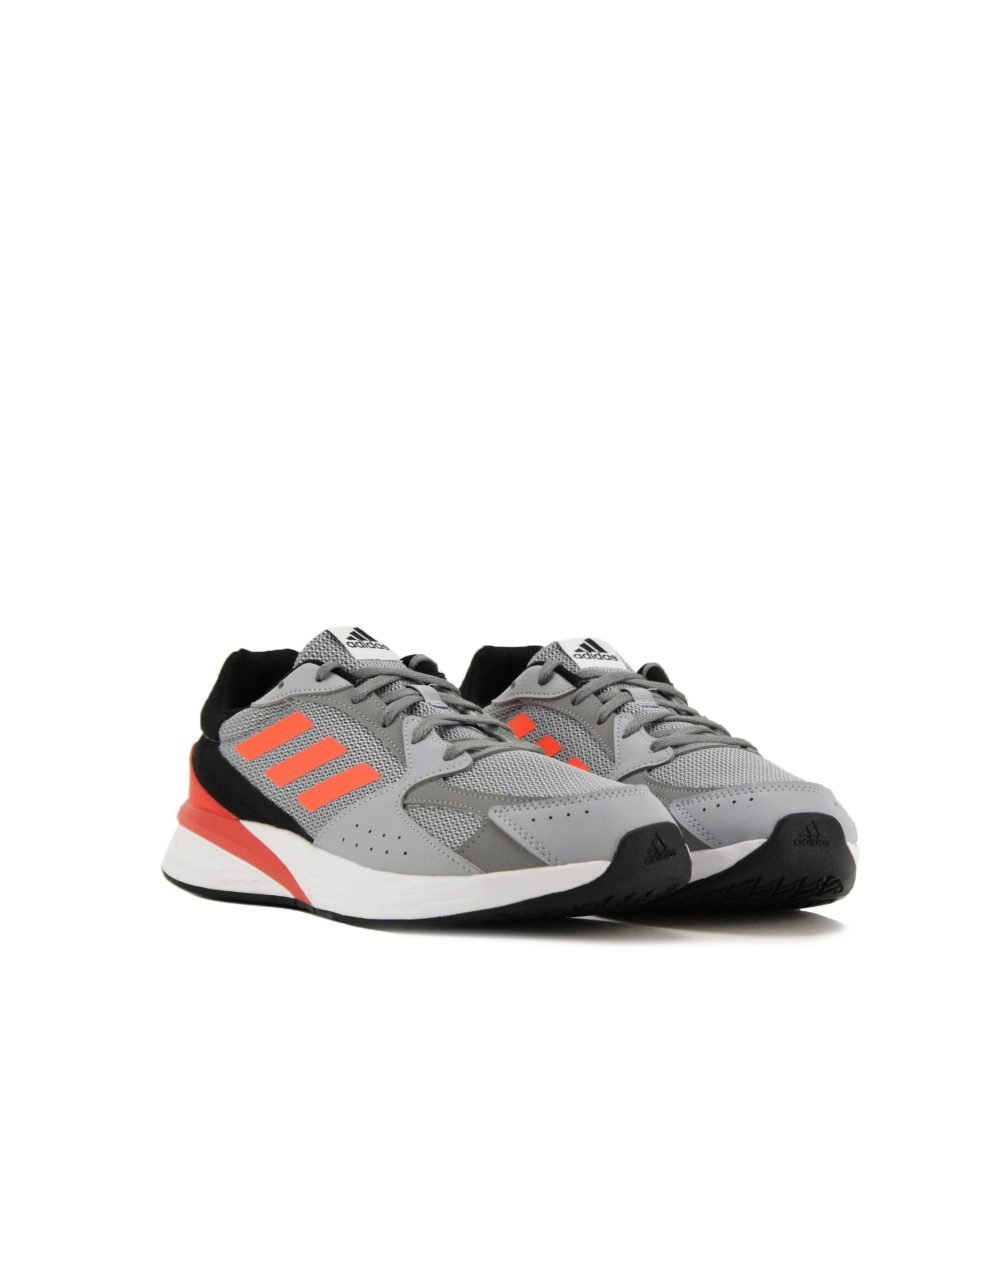 Adidas Response Run (FY5956) Halo Silver/Solar Red/Grey Three